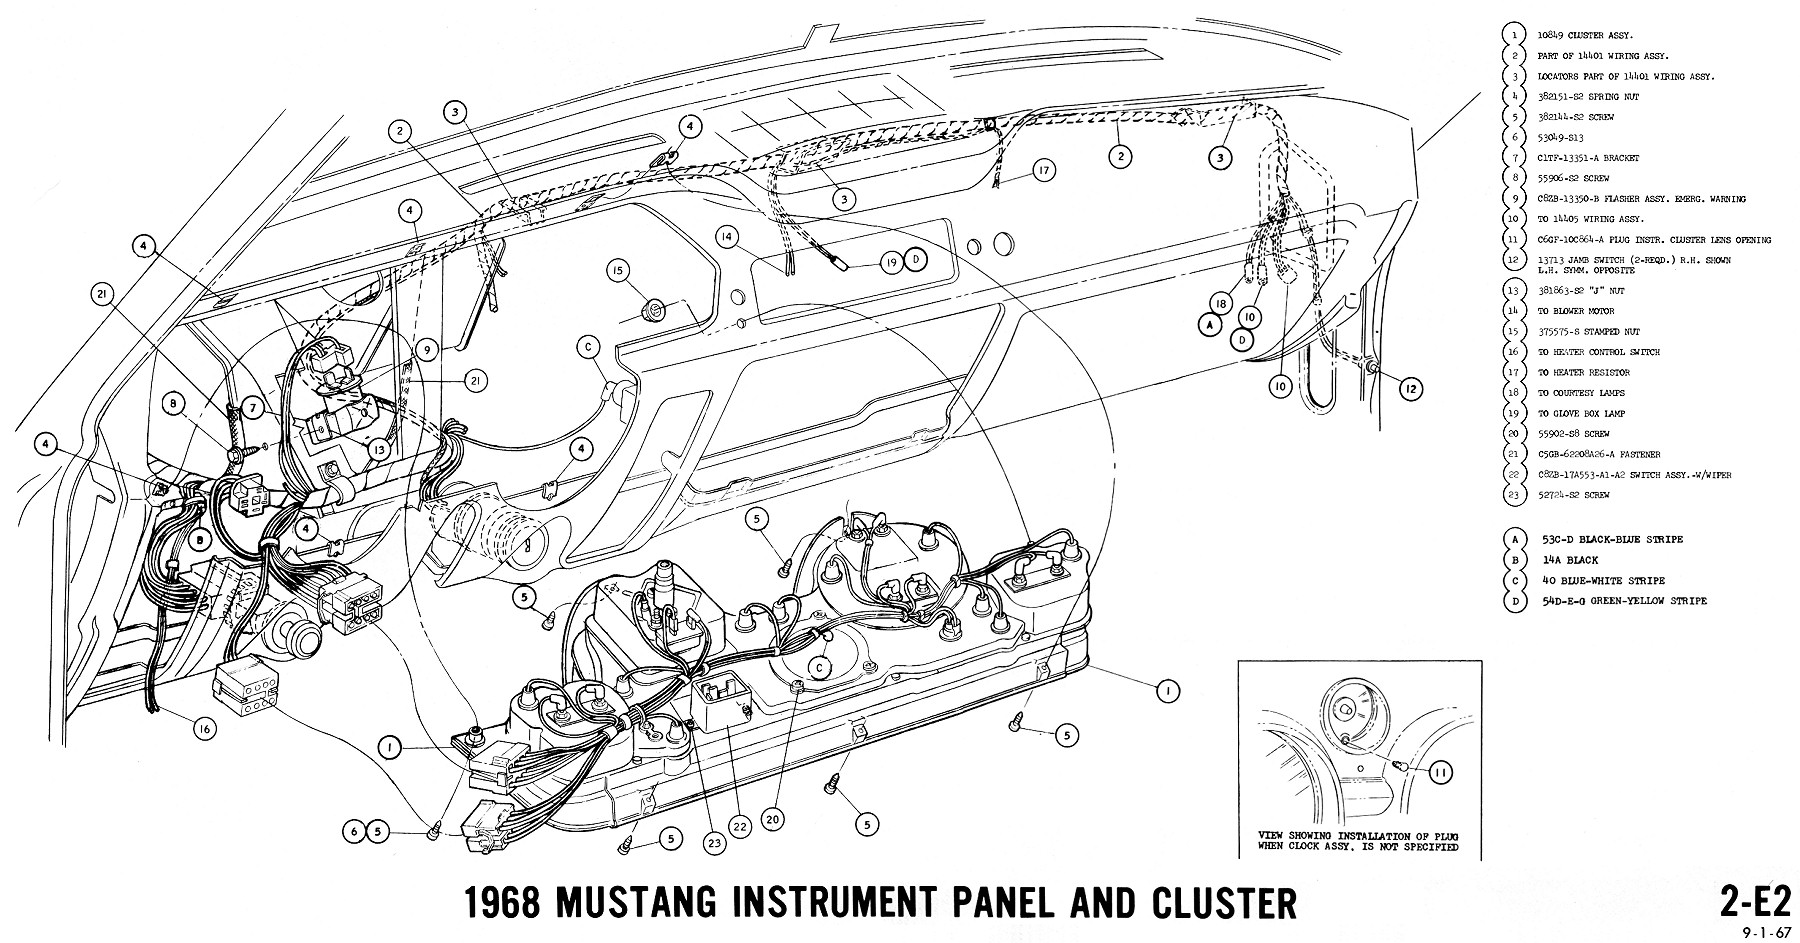 1968 mustang wiring diagrams and vacuum schematics - average joe,Wiring diagram,Wiring Diagram For A 1968 Ford Mustang